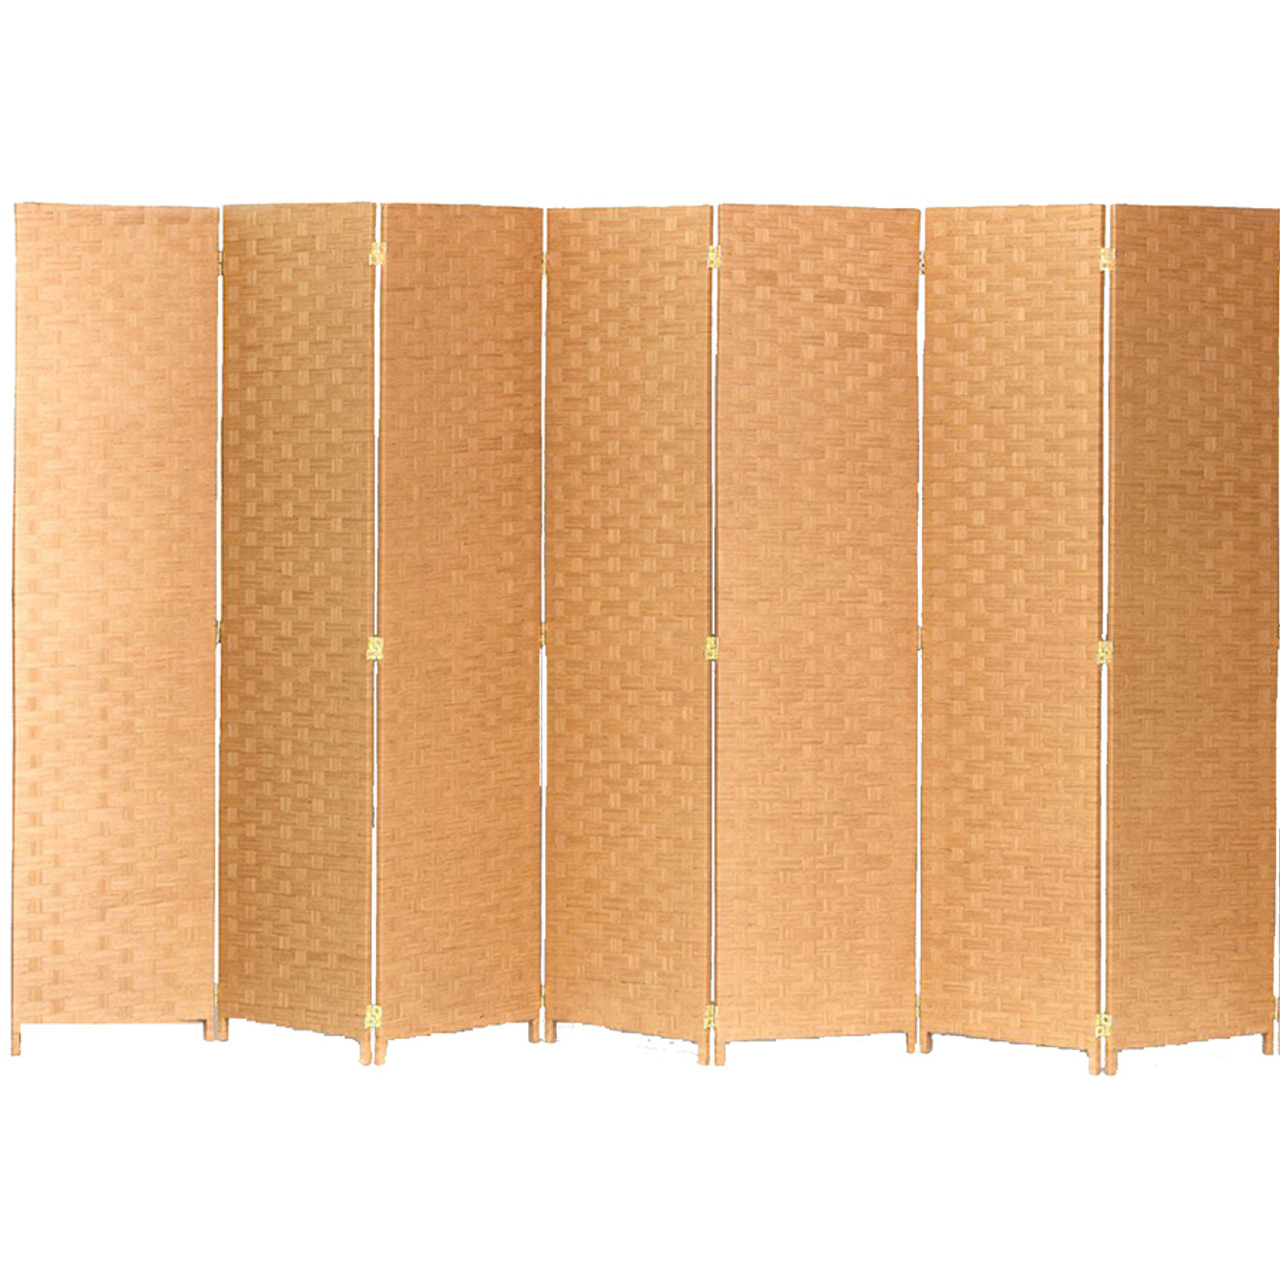 Bamboo Woven Panel Room Divider, Privacy Partition Screen, 7 Panels